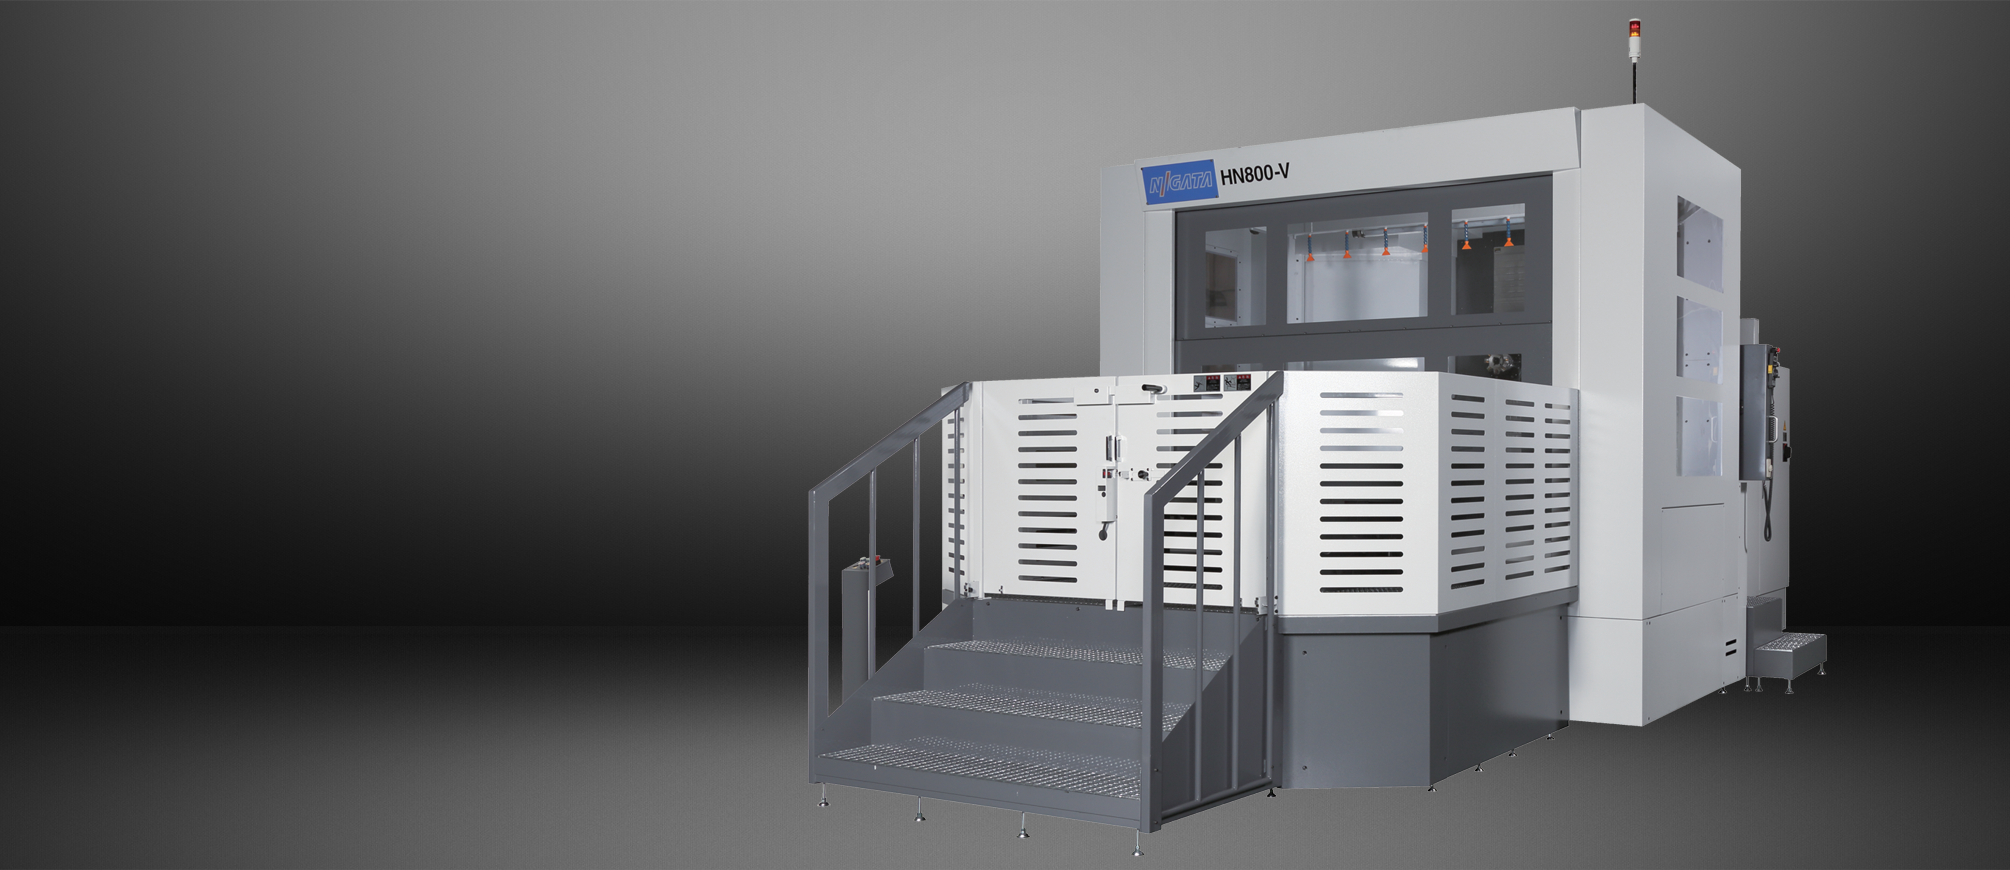 HN800-V Horizontal Machining Centers